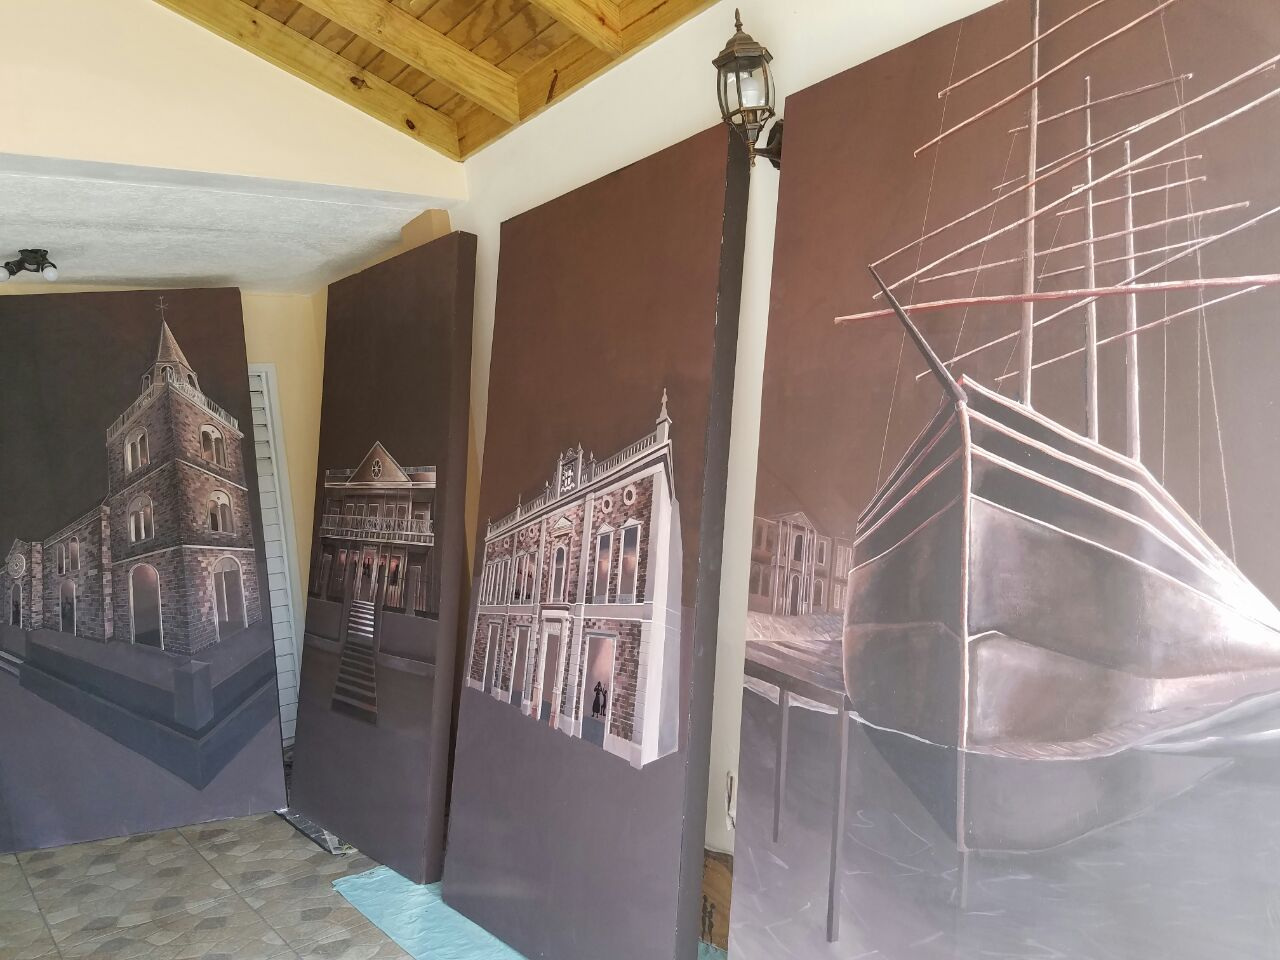 Tiana Anglin, from left   Kingston Parish Church, Hibbert House, The Theatre Royal   and   Kingston Harbour (Pre-1907),   2018, Emulsion paints on plywood panel. 8' x 4' each.